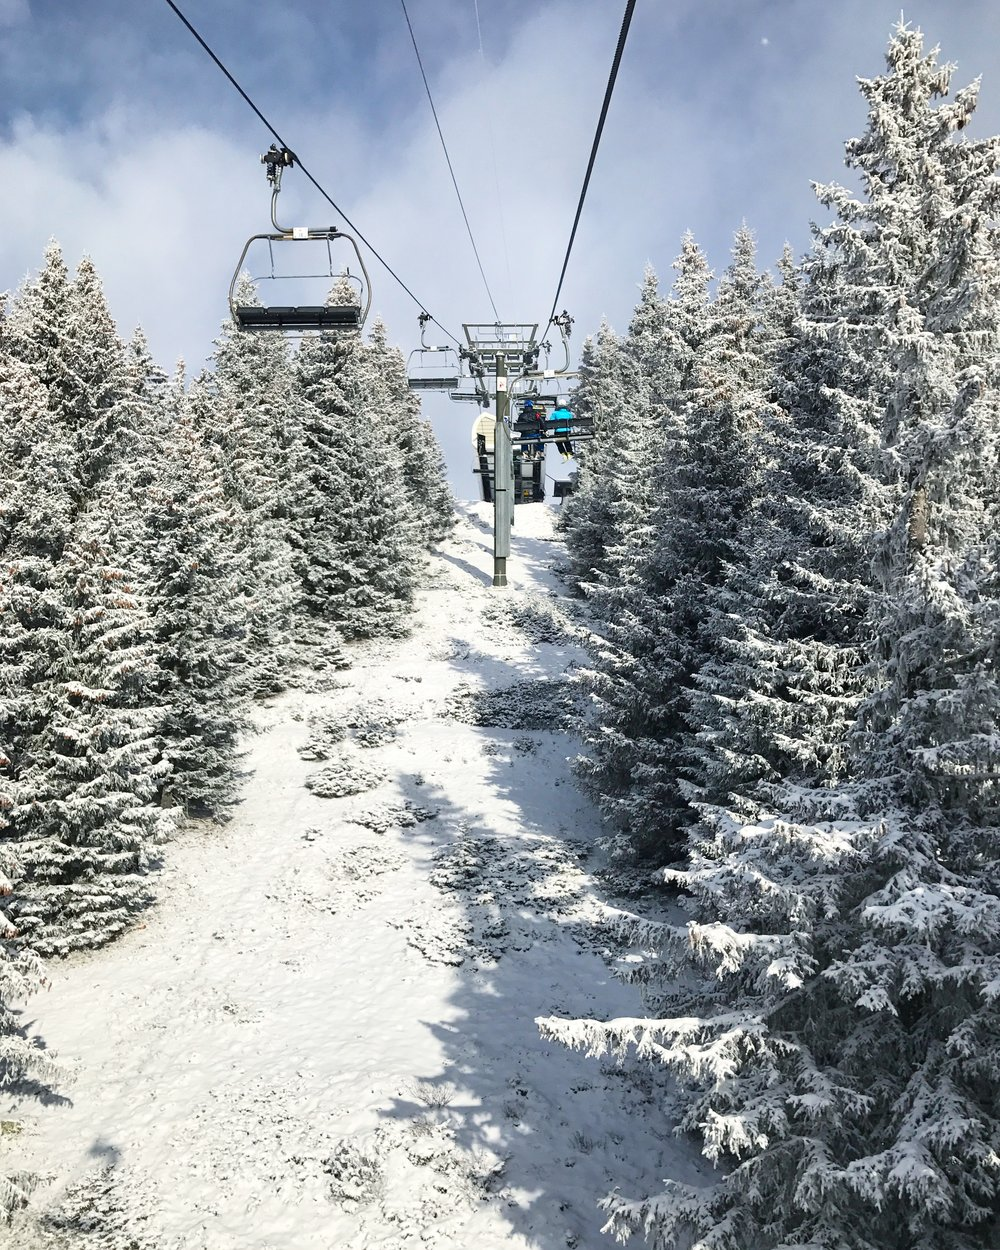 View from ski chairlift in St Gervais, Mont Blanc France. Snow covered trees taken January 2017